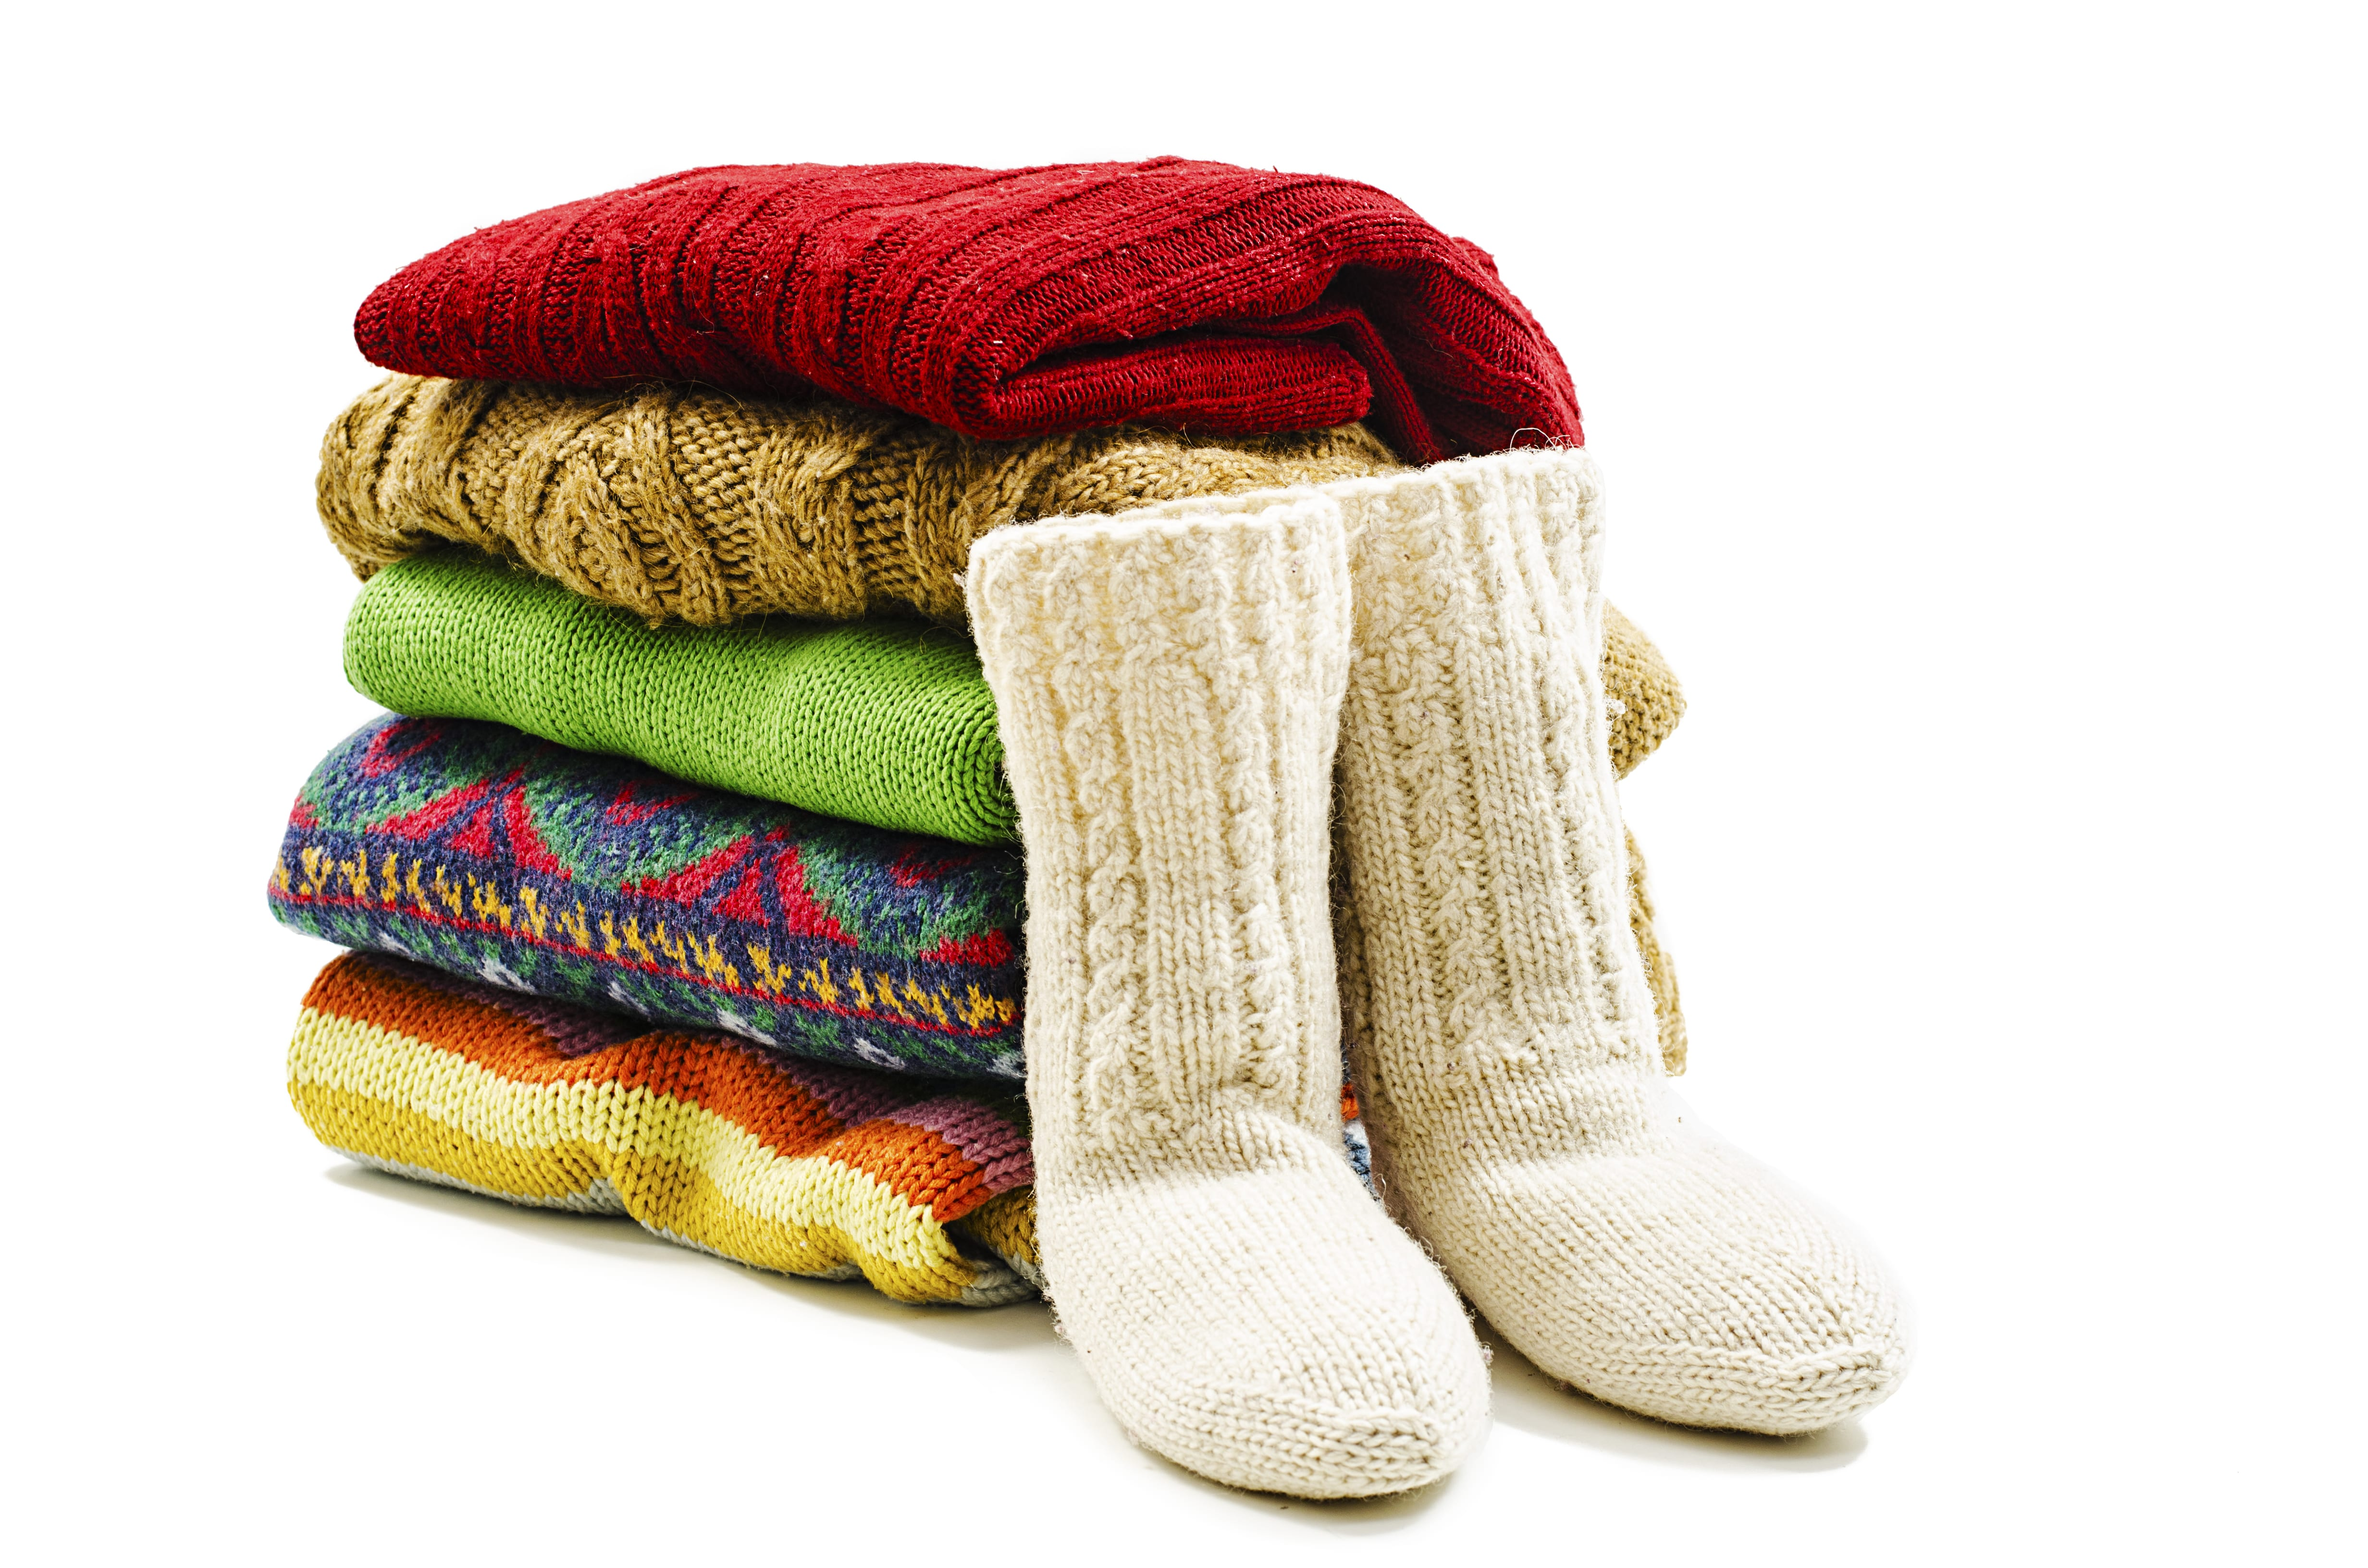 A neat pile of colorful sweaters sit next to a pair of cozy wool slippers, ready to be prepped for winter storage.